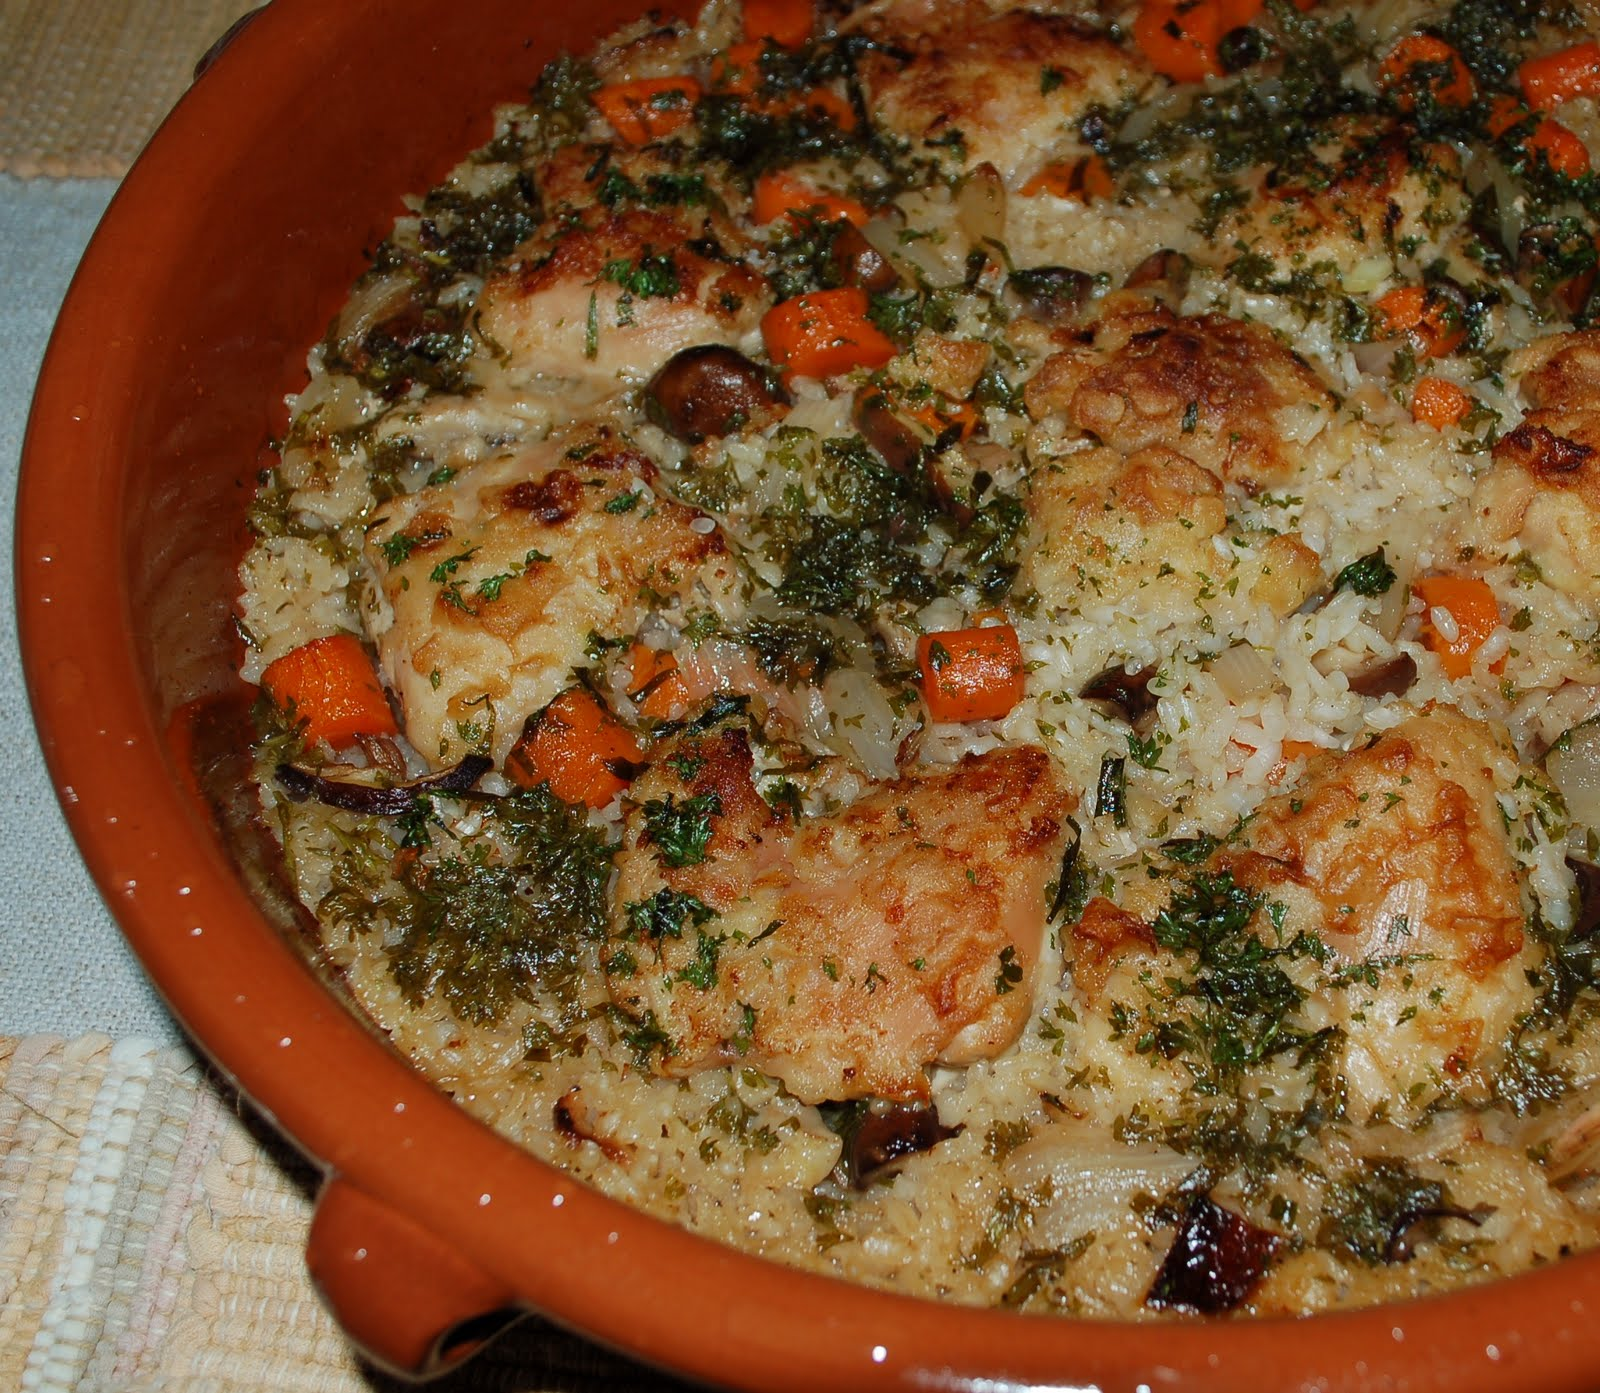 The Spice Garden: Braised Chicken Thighs And Oven